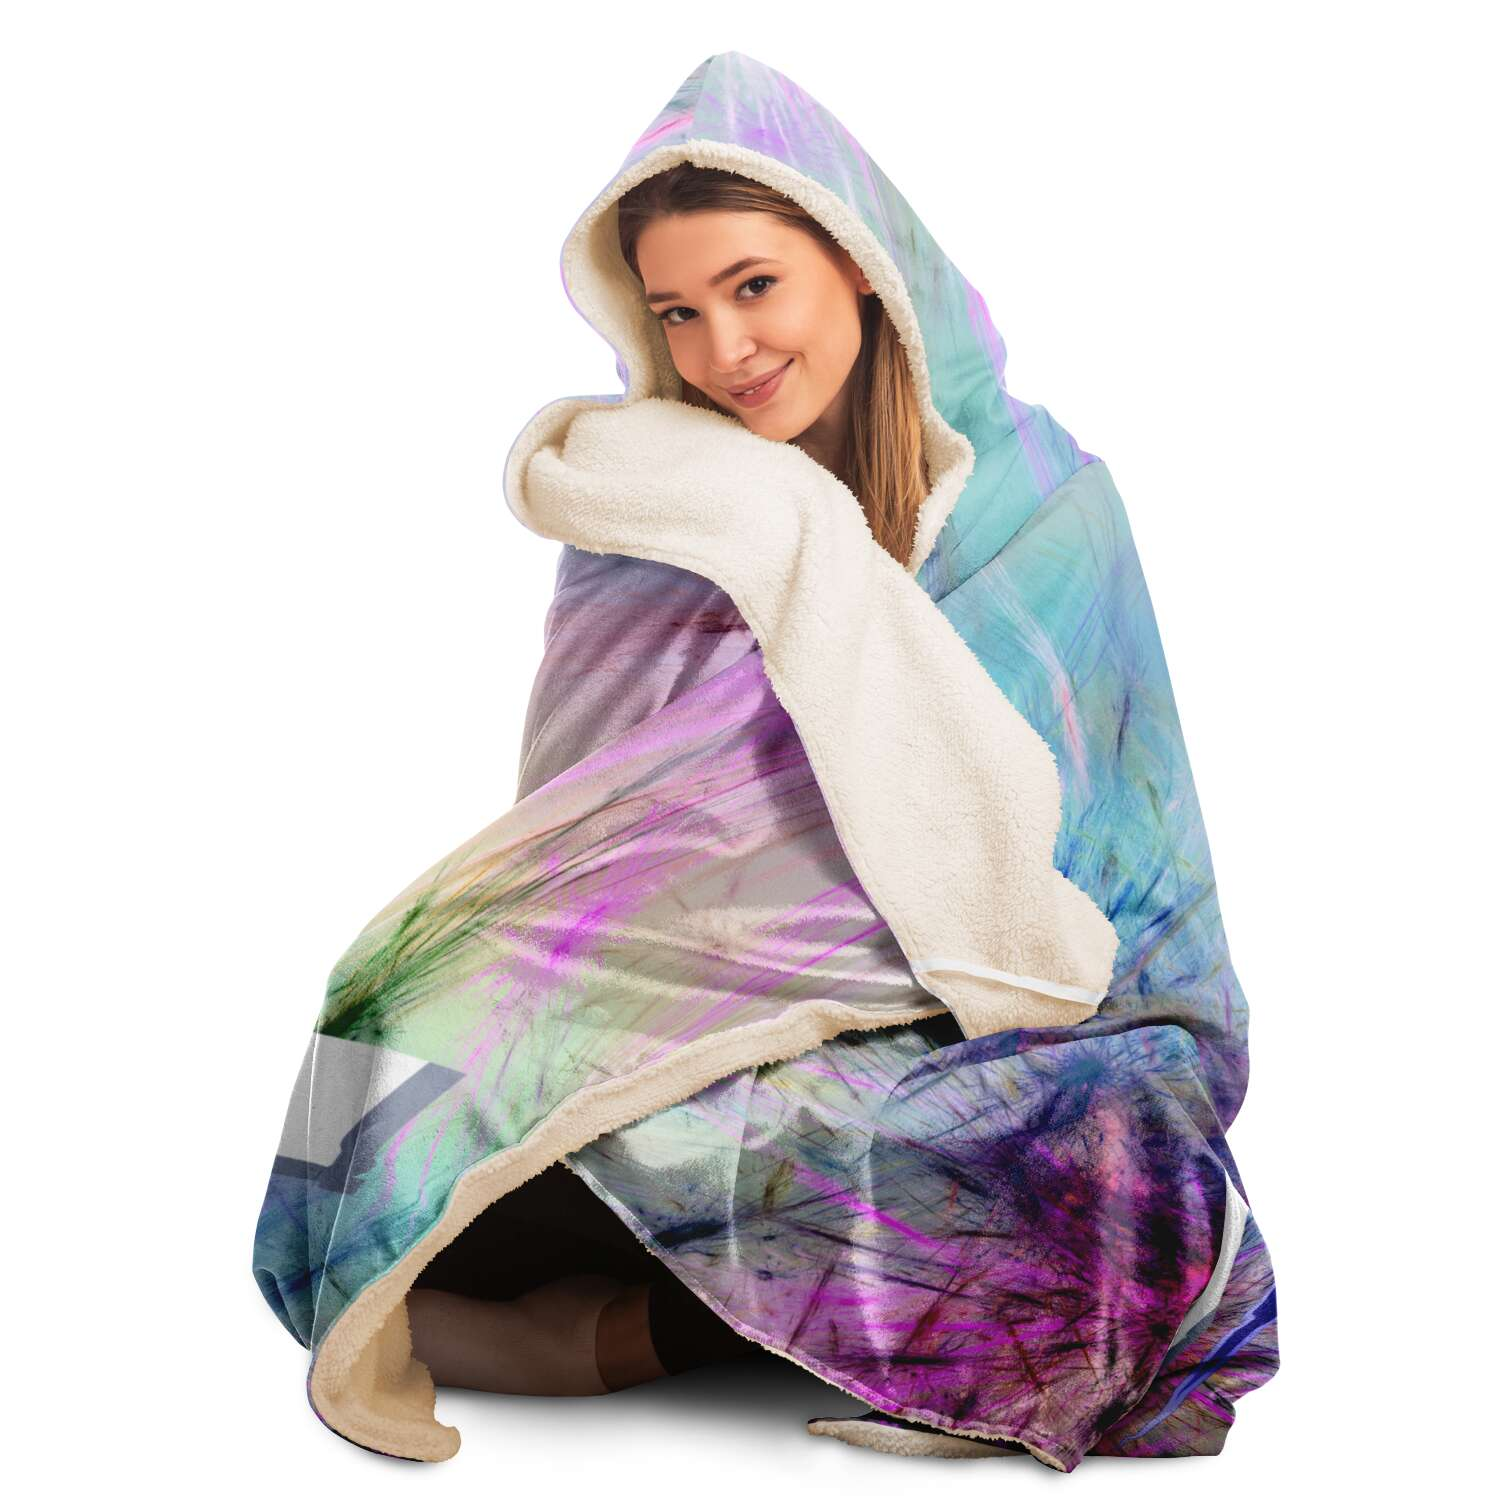 Rlistic Hooded Blanket Subliminator